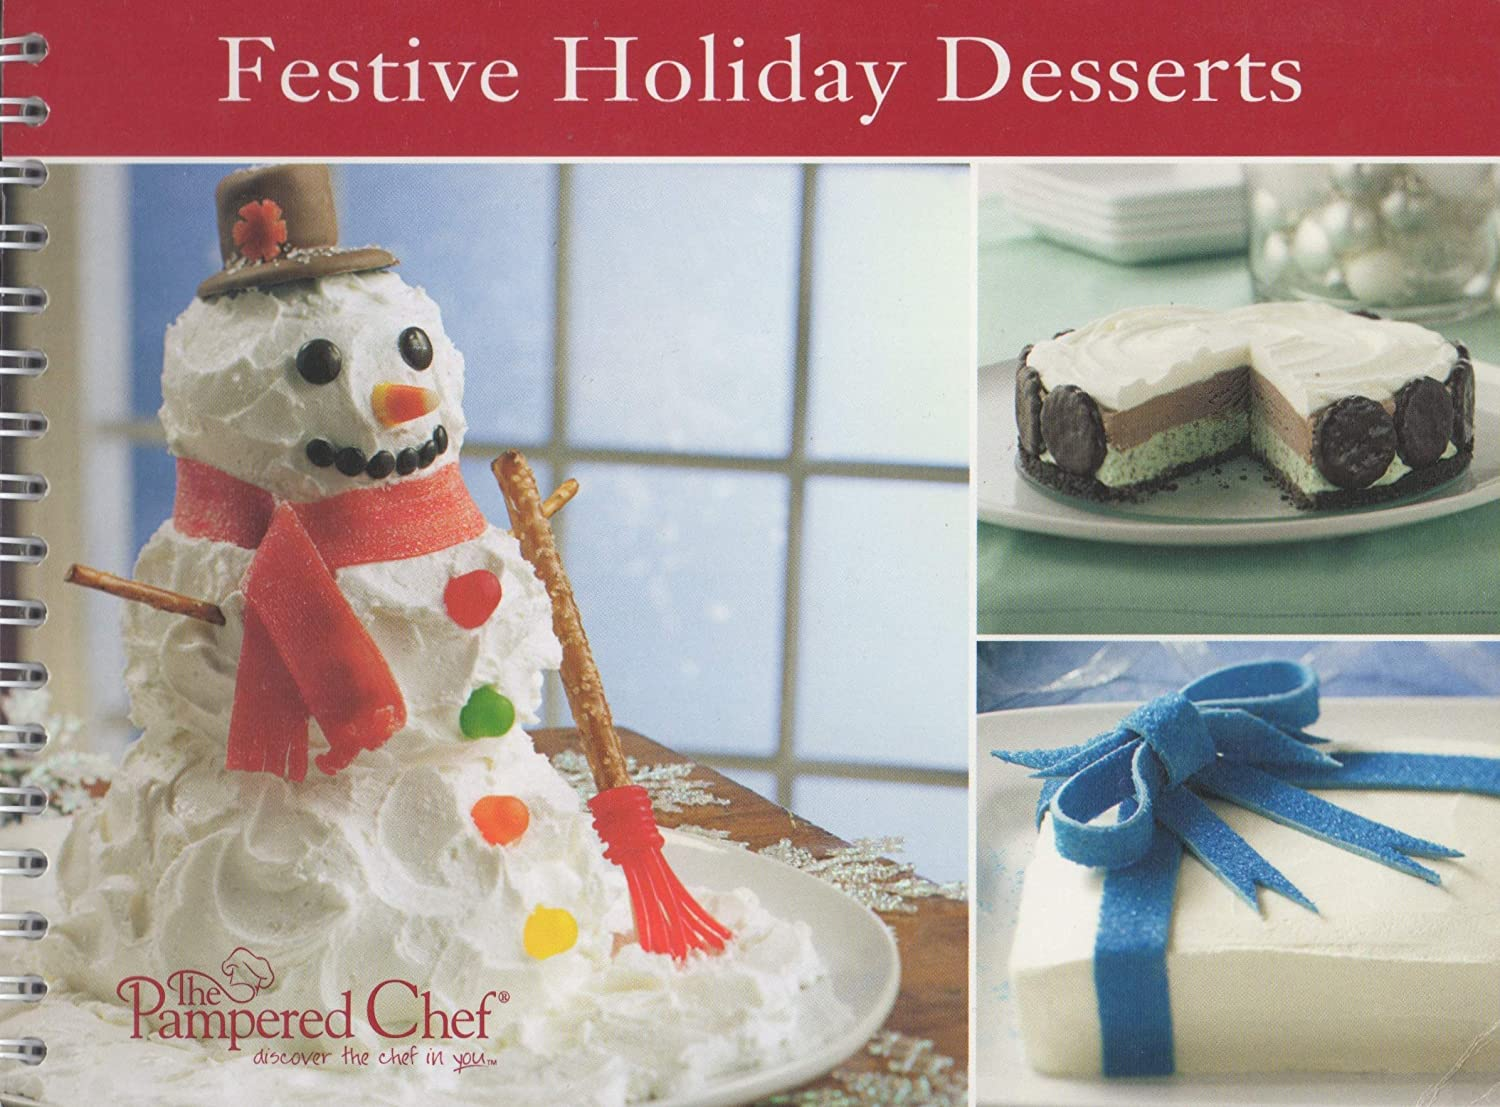 The Pampered Chef Festive Holiday Desserts Recipe Collection 2216